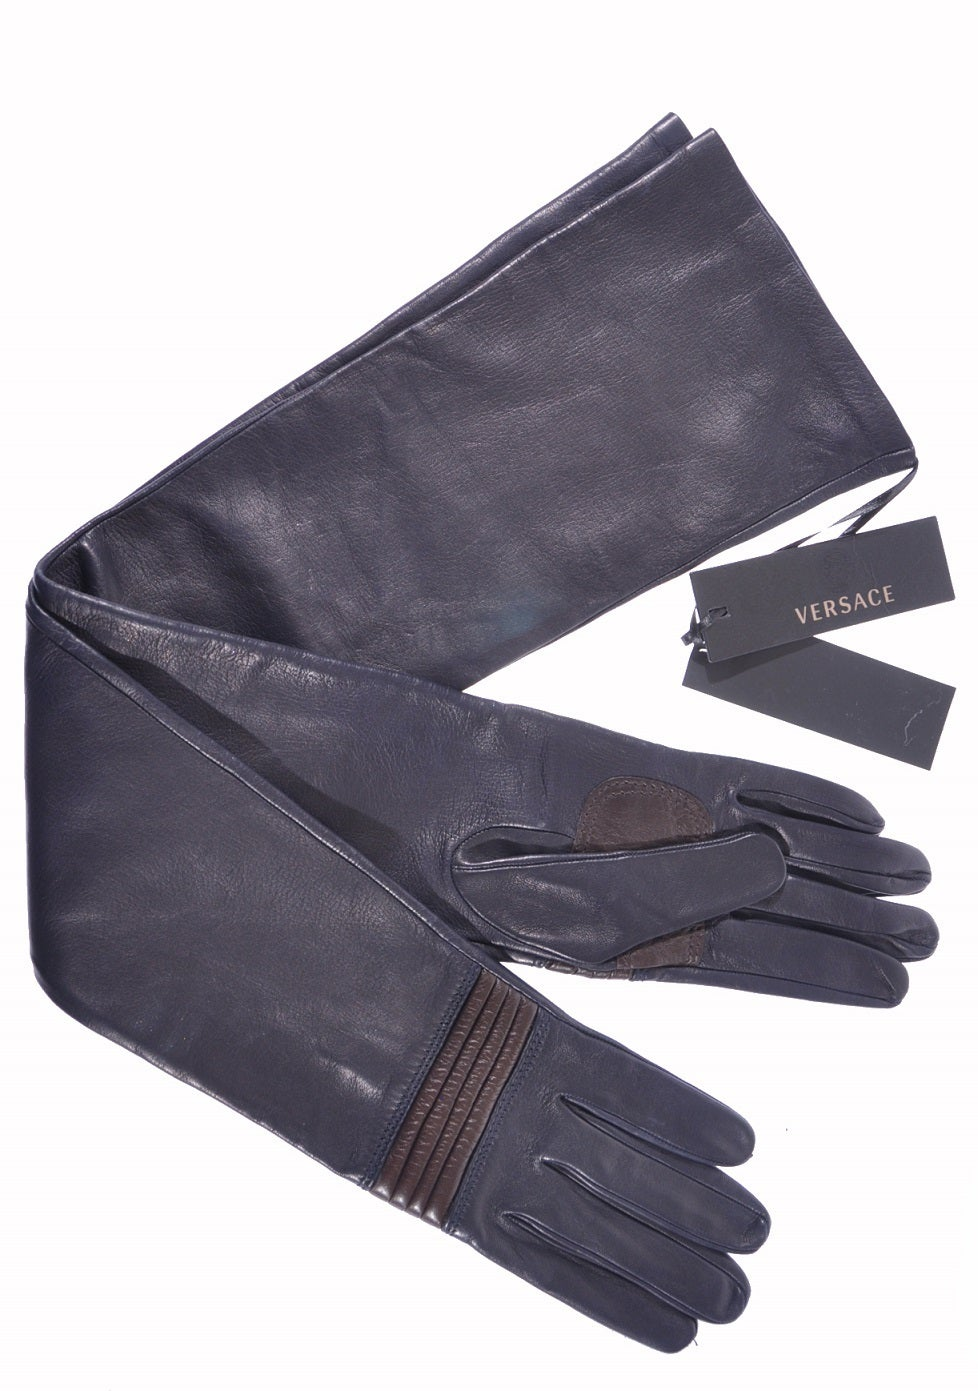 VERSACE gloves  This expertly handcrafted glove will add an element of luxurious Italian style to any outfit. In supple lambskin in delicious dark navy (almost black) color, finished with chocolate quilted leather detail.  Made in Italy.  Size